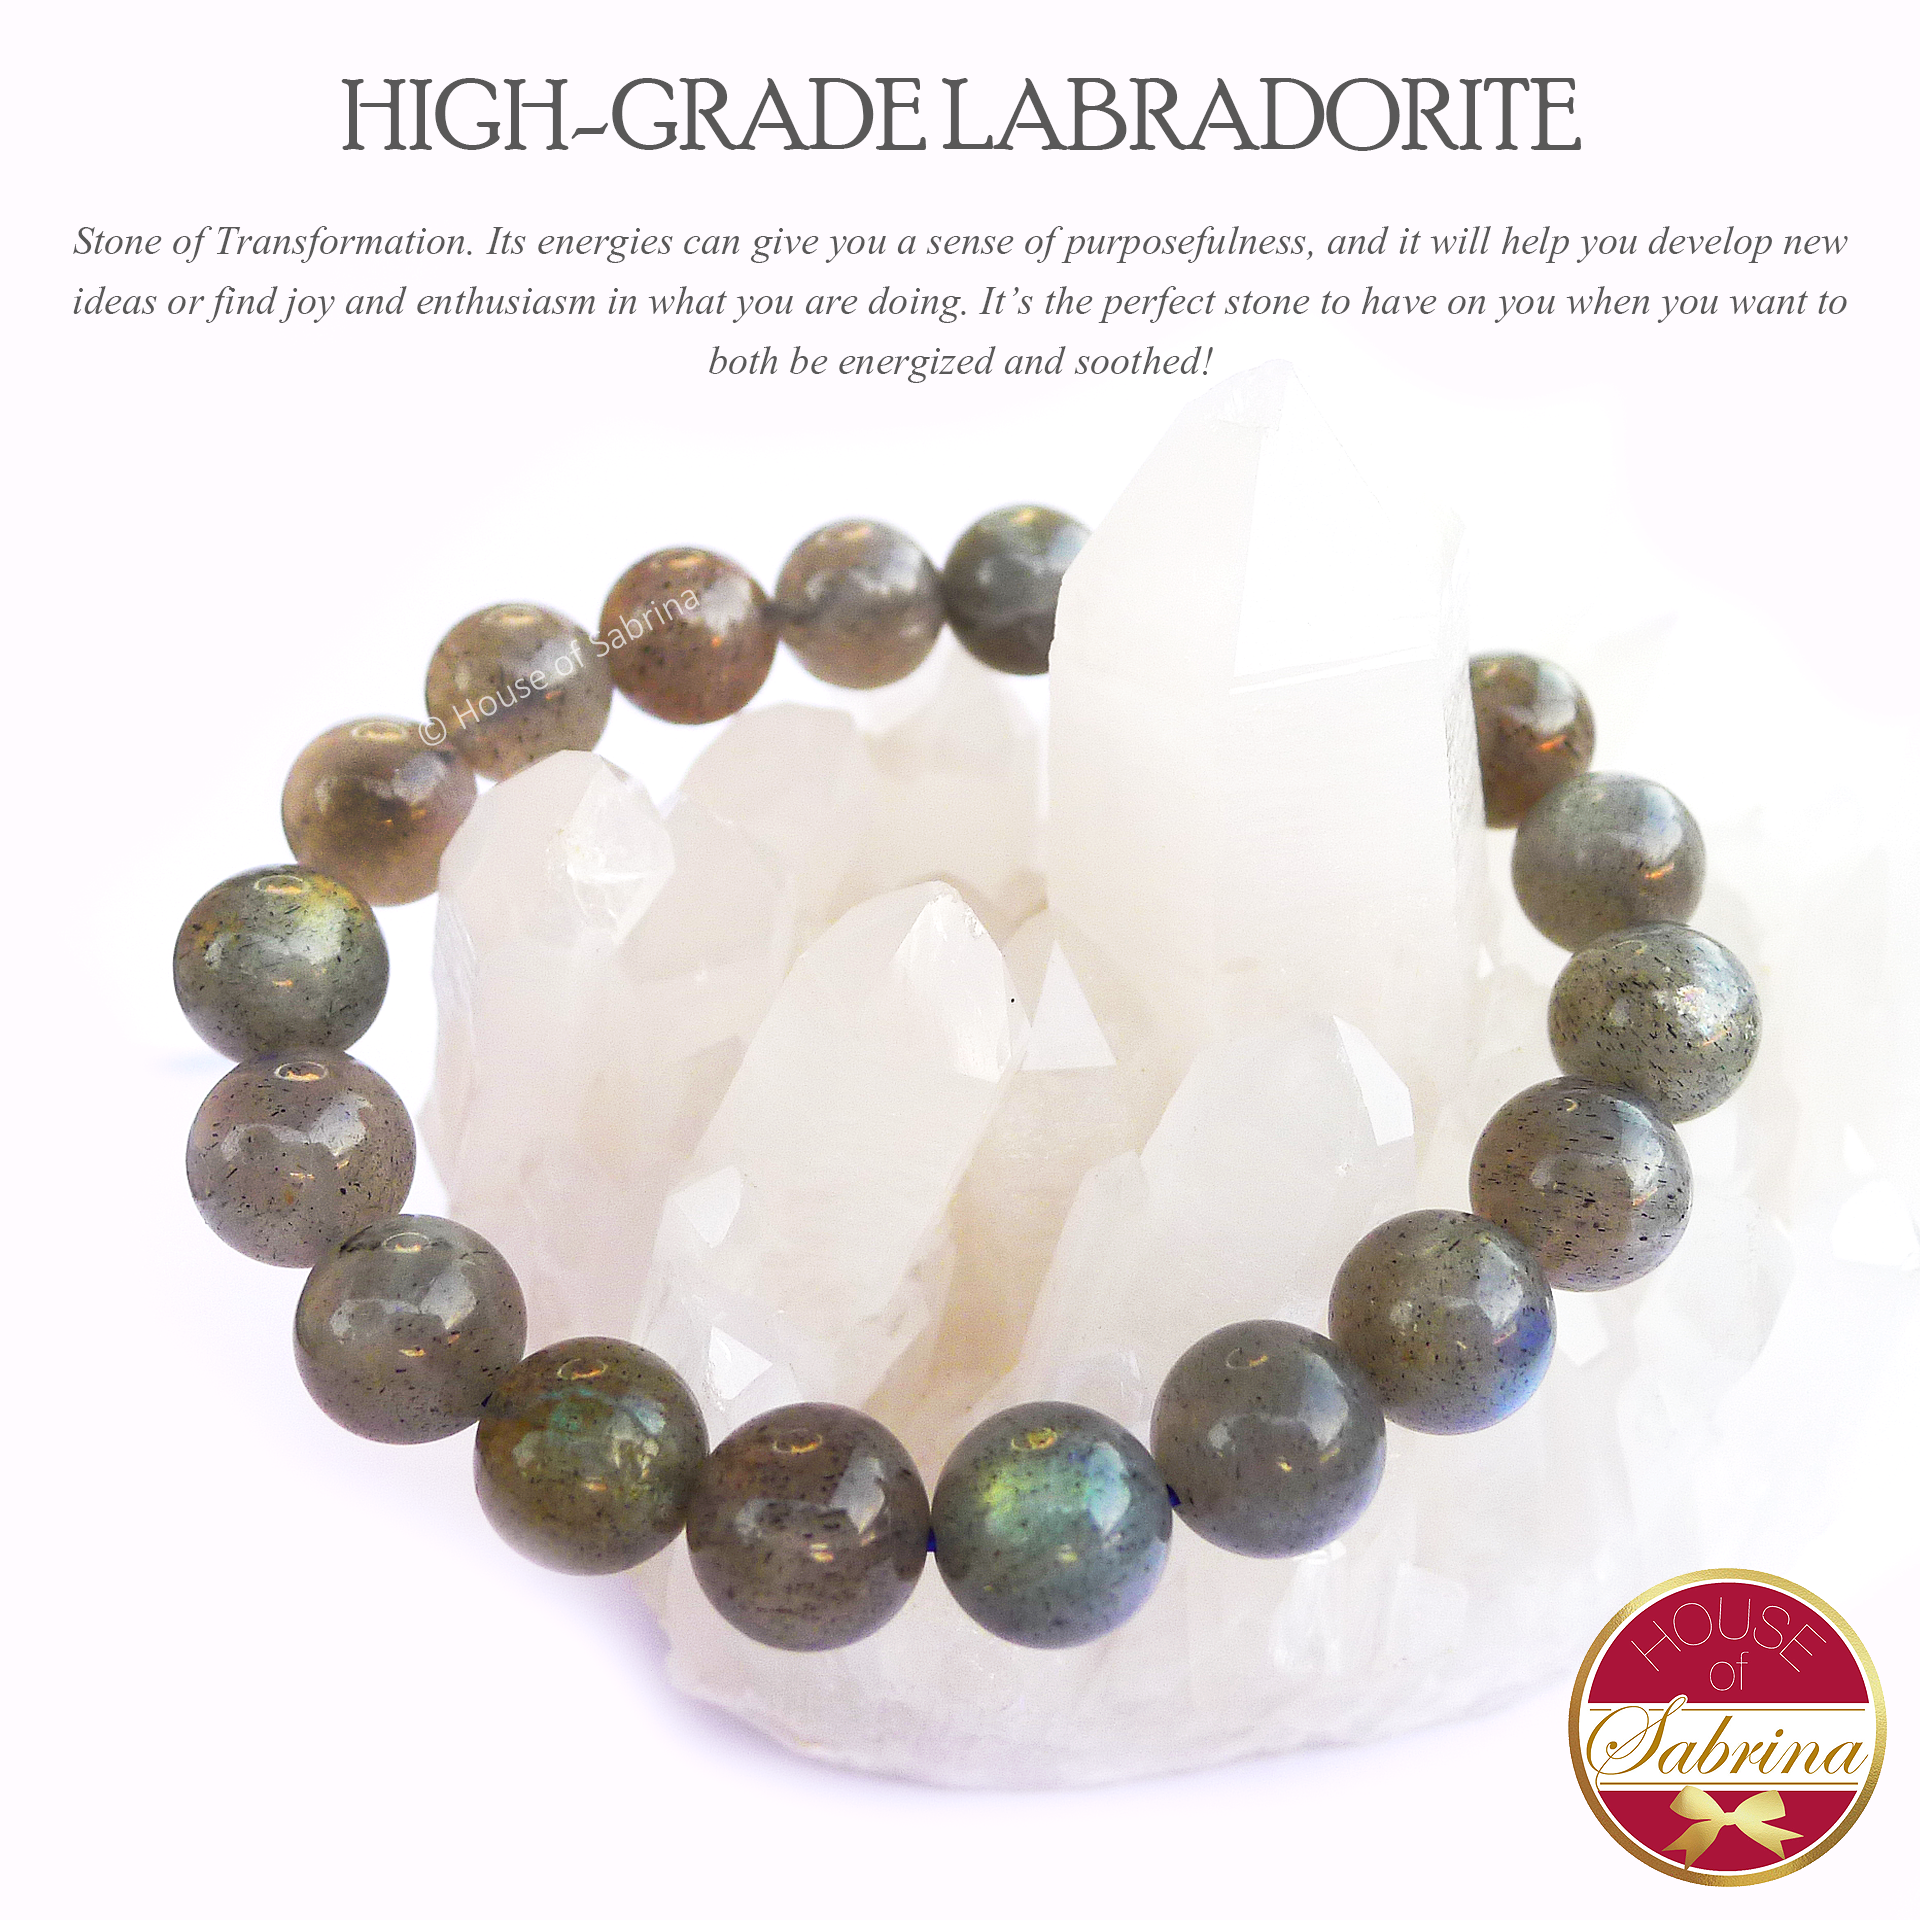 High Grade Labradorite